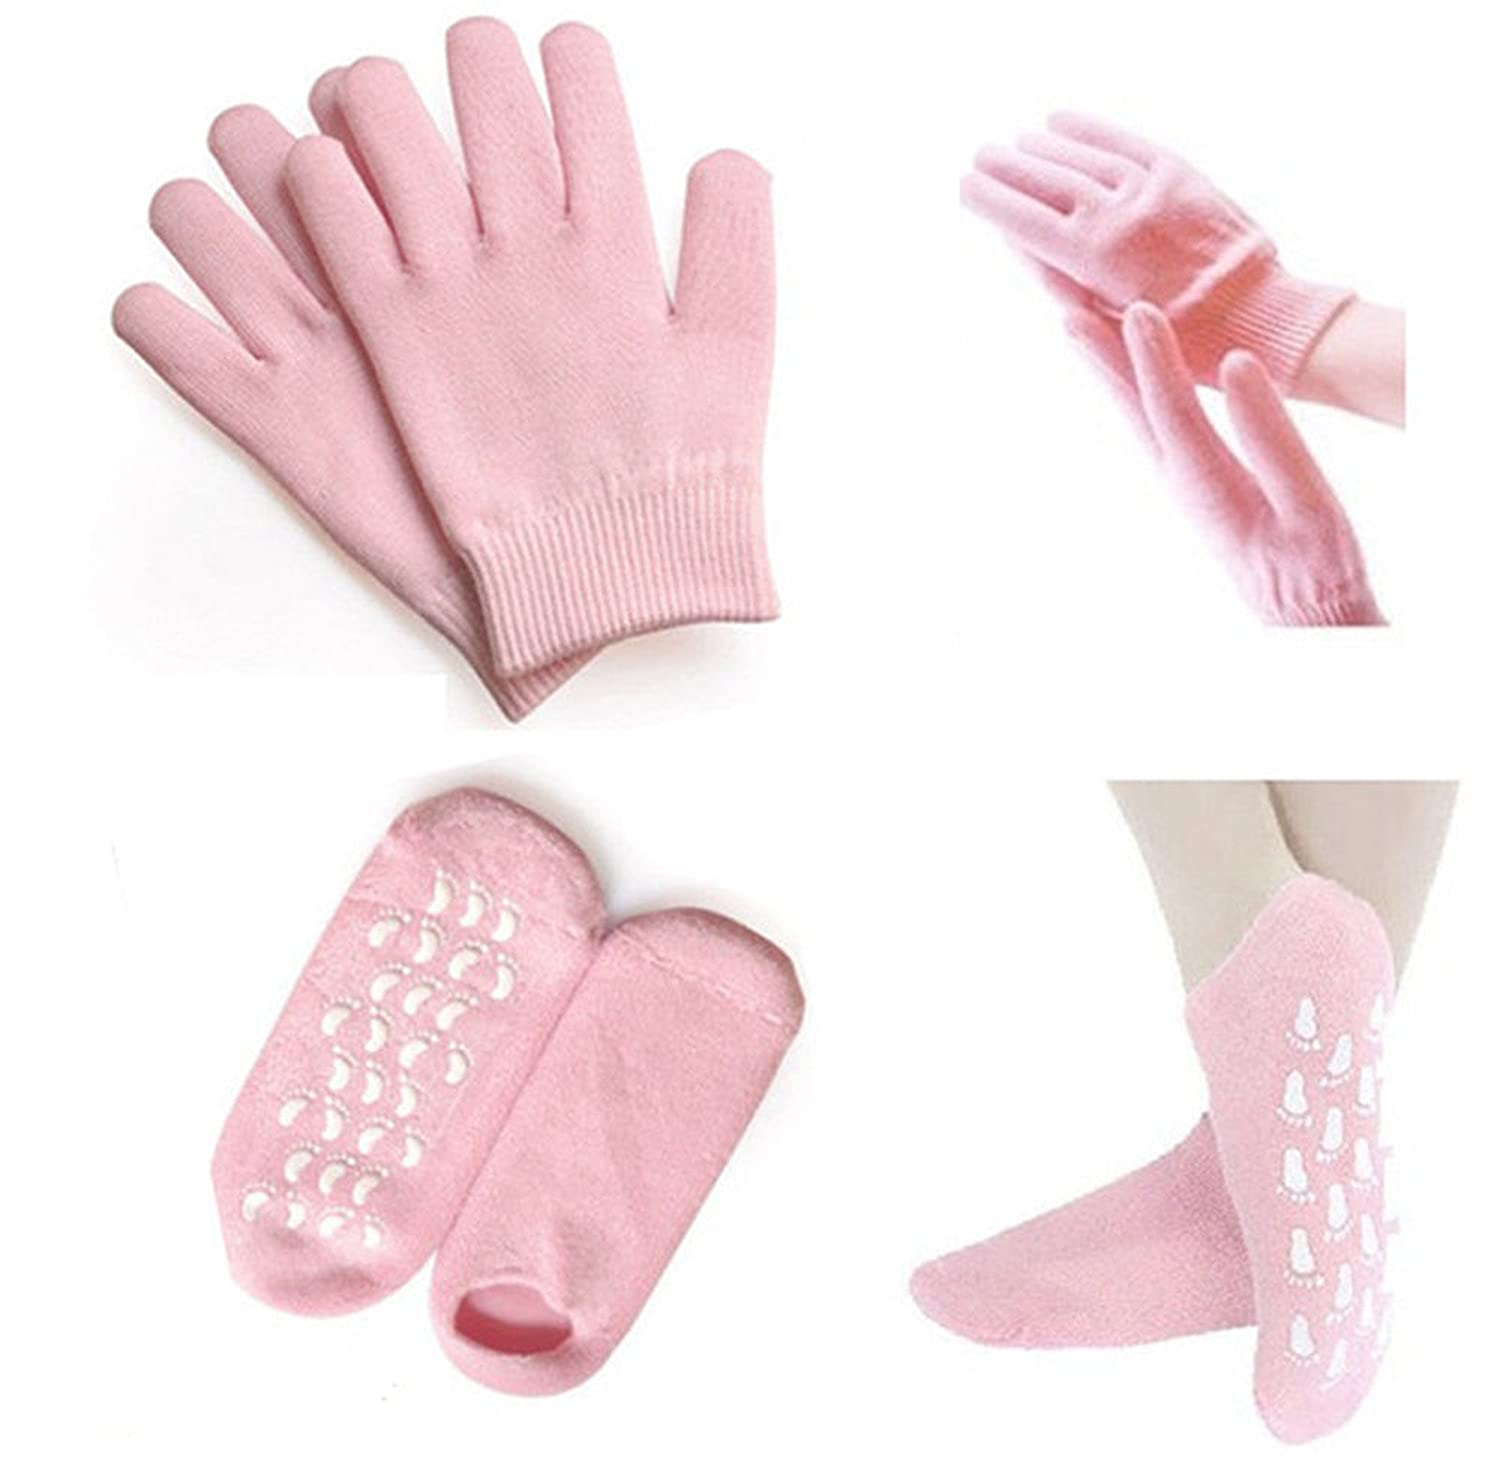 Healtheveryday® Pink Gel Gloves & Gel Socks Beauty Spa Moisturizing Skincare Soften therapy treatment care your feet&hands Exfoliating and Whitening Product